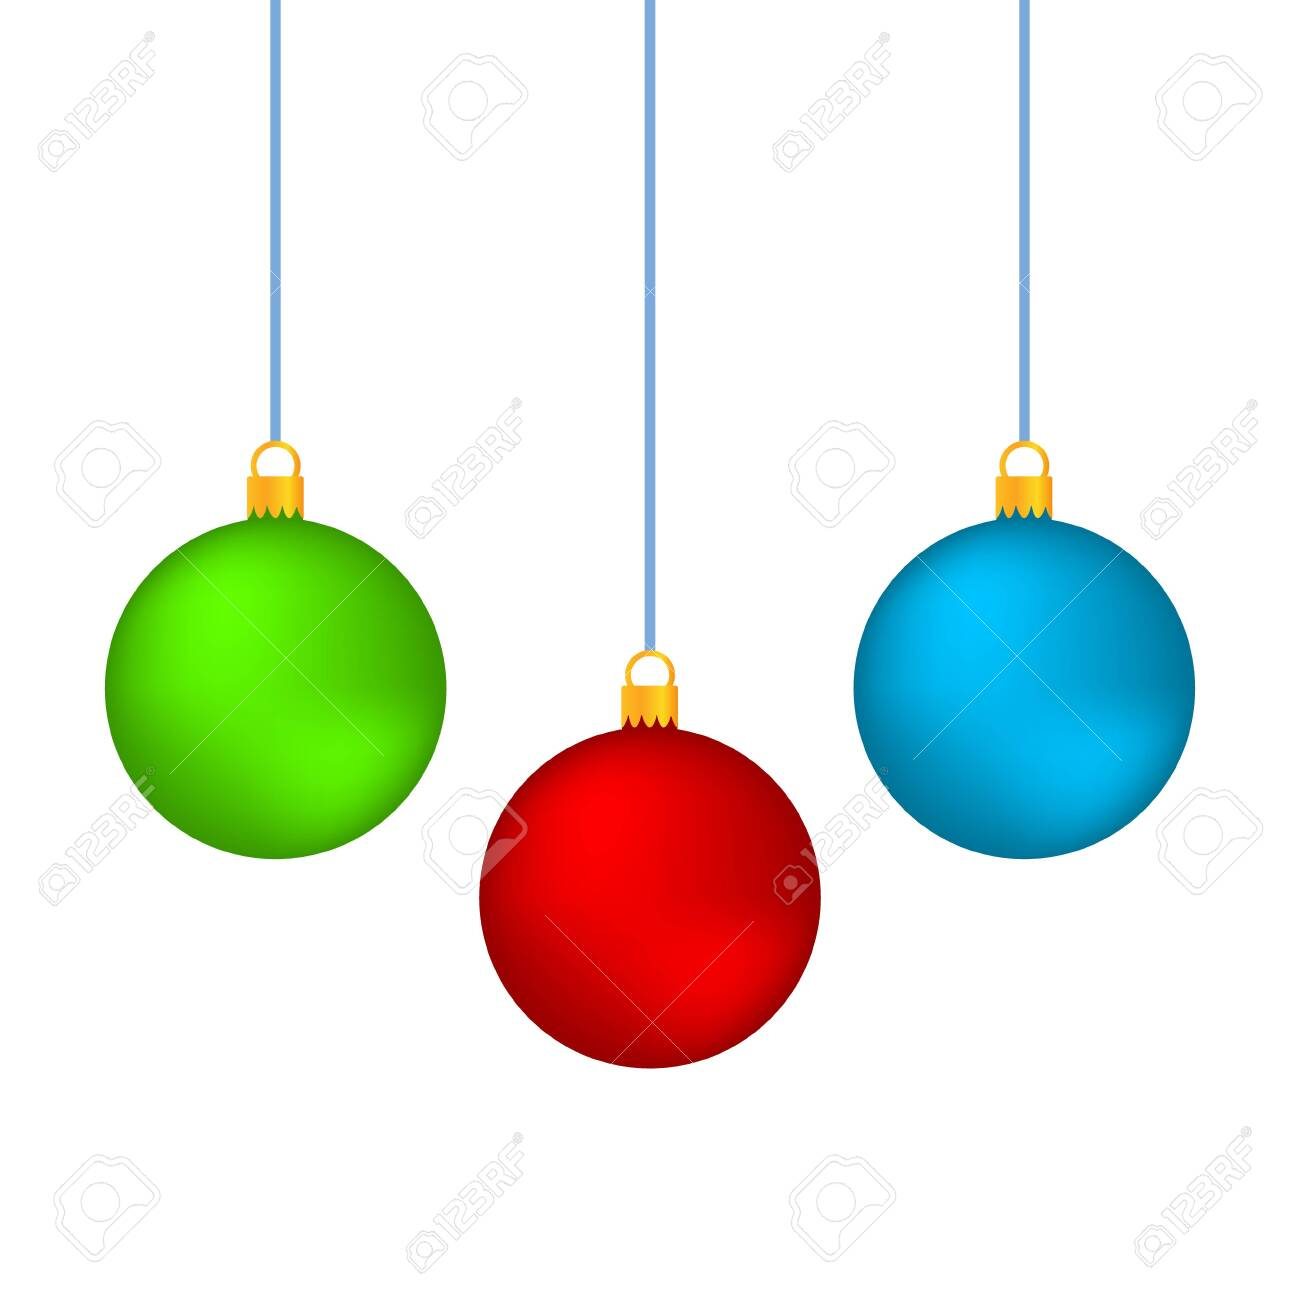 Realistic Christmas set balls vector icons isolated on the white background - 140435802